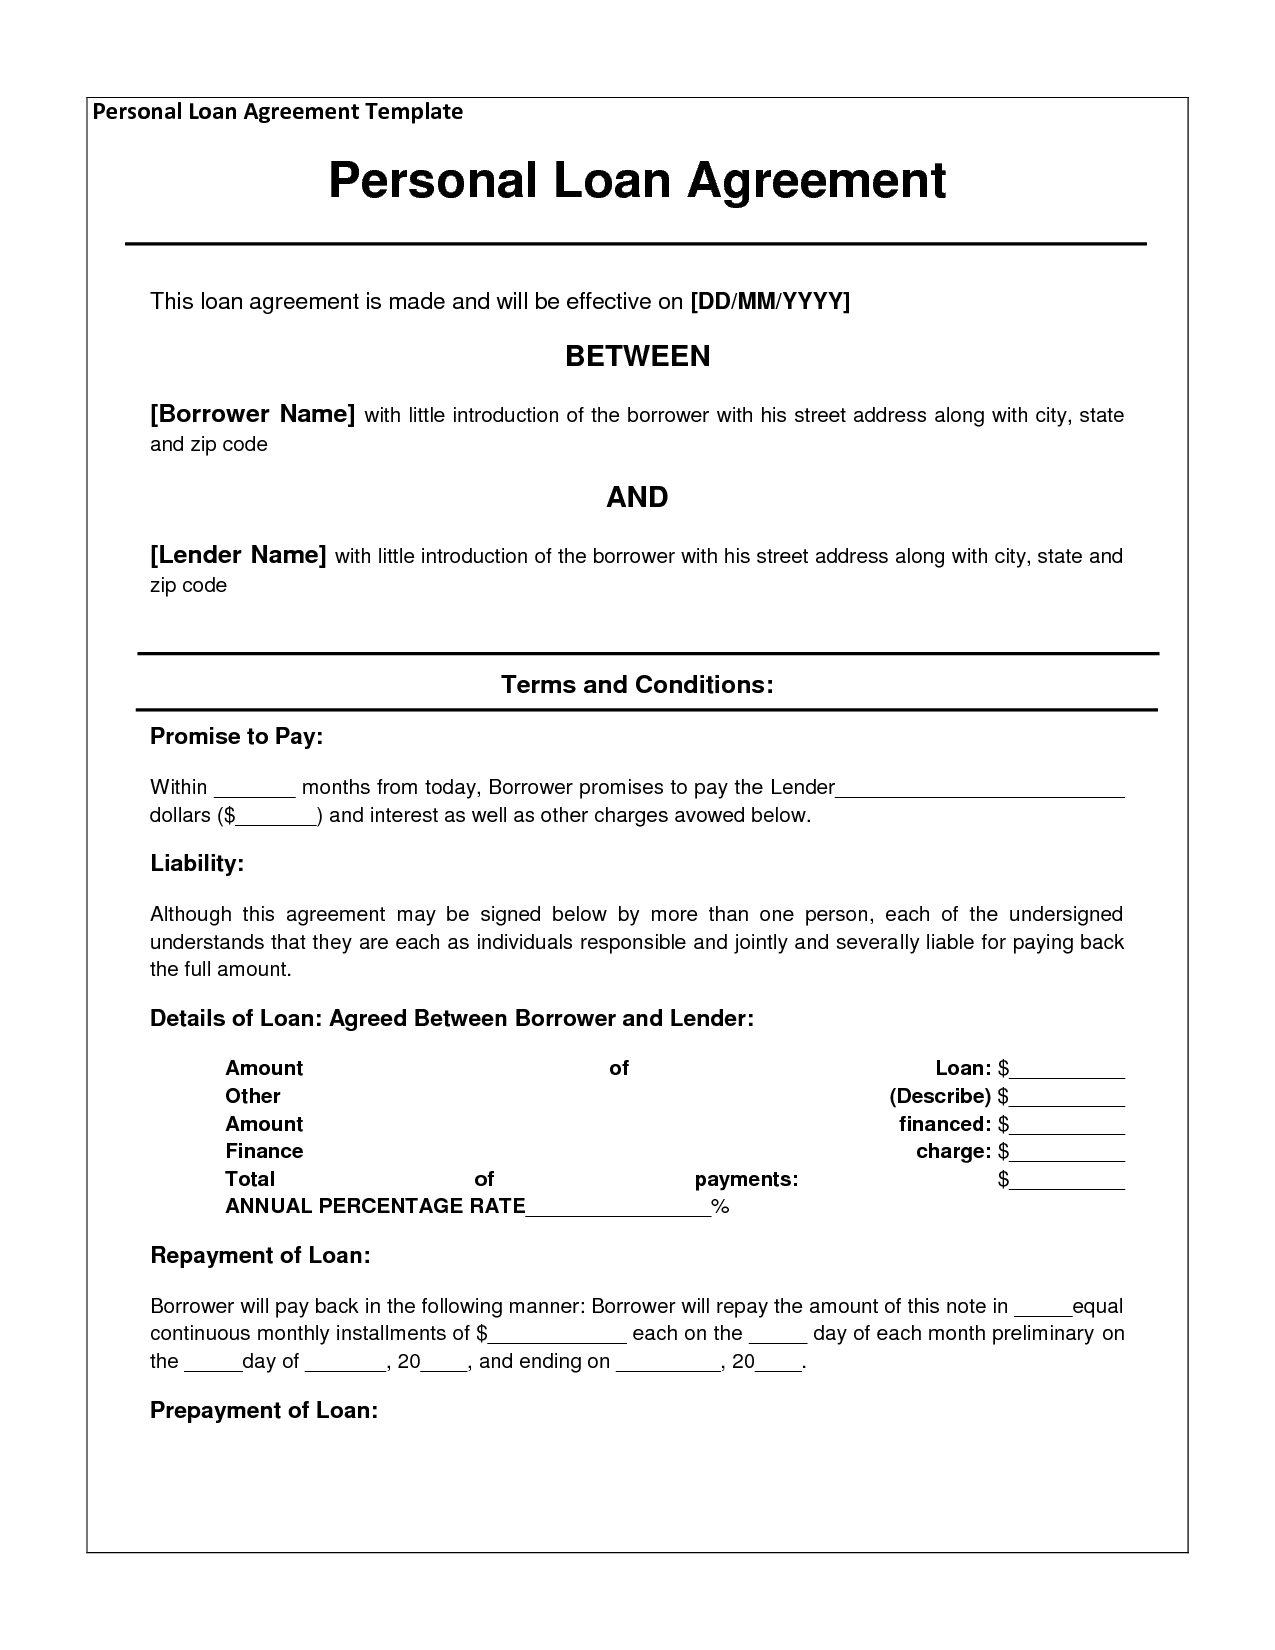 Free personal loan agreement form template 1000 Approved in 2 – Loan Template Agreement